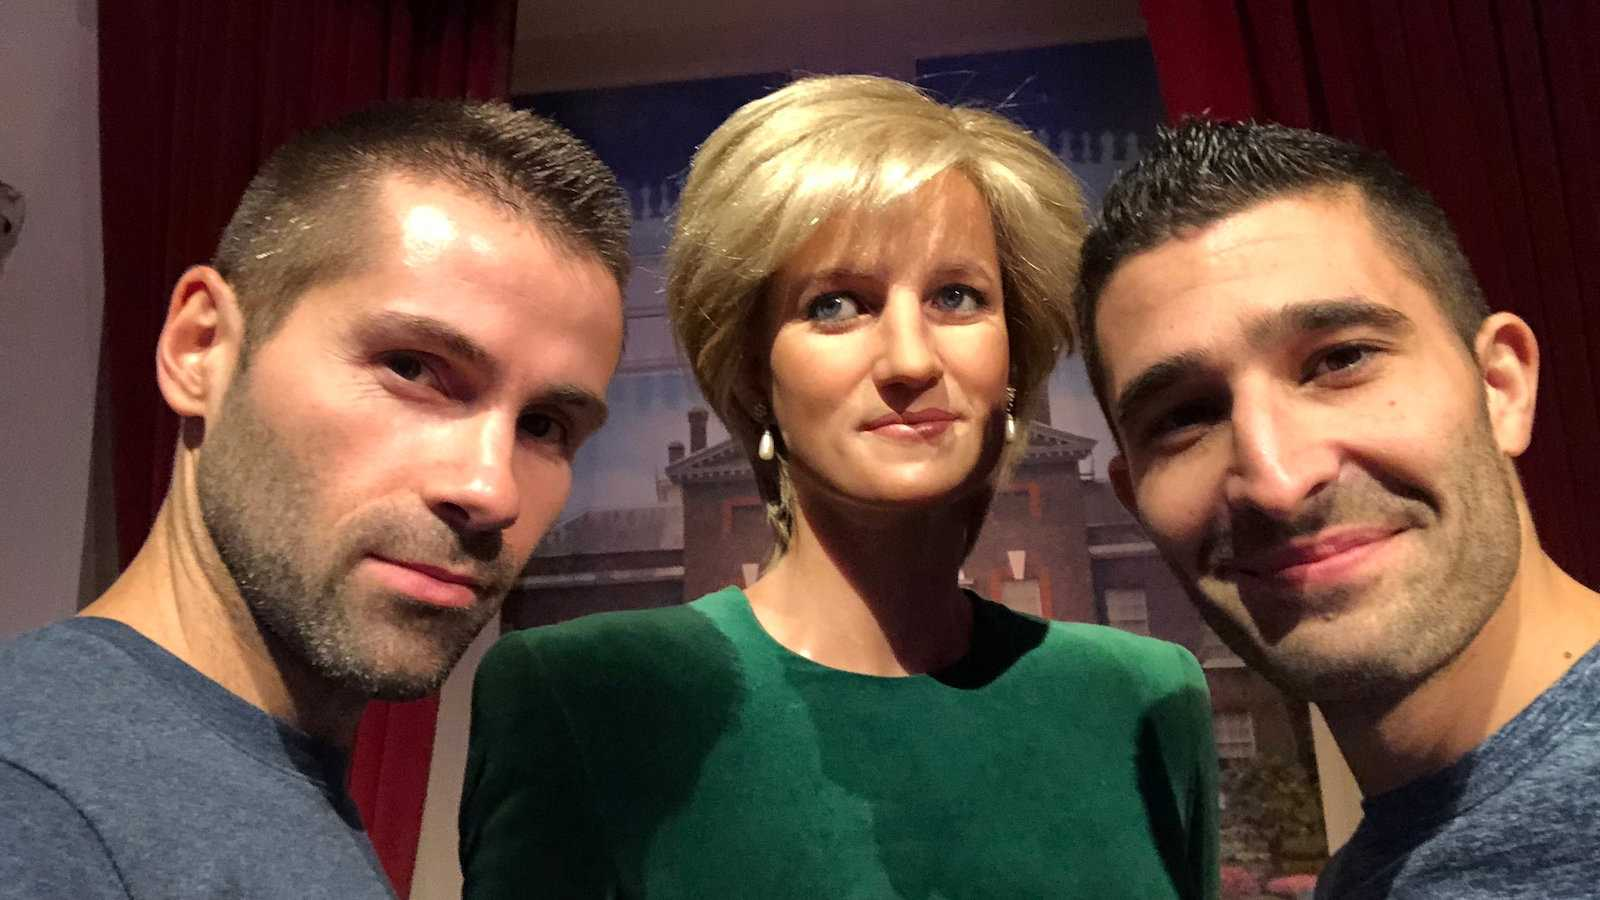 You can get a selfie with Princess Diana at Madame Tussauds in London